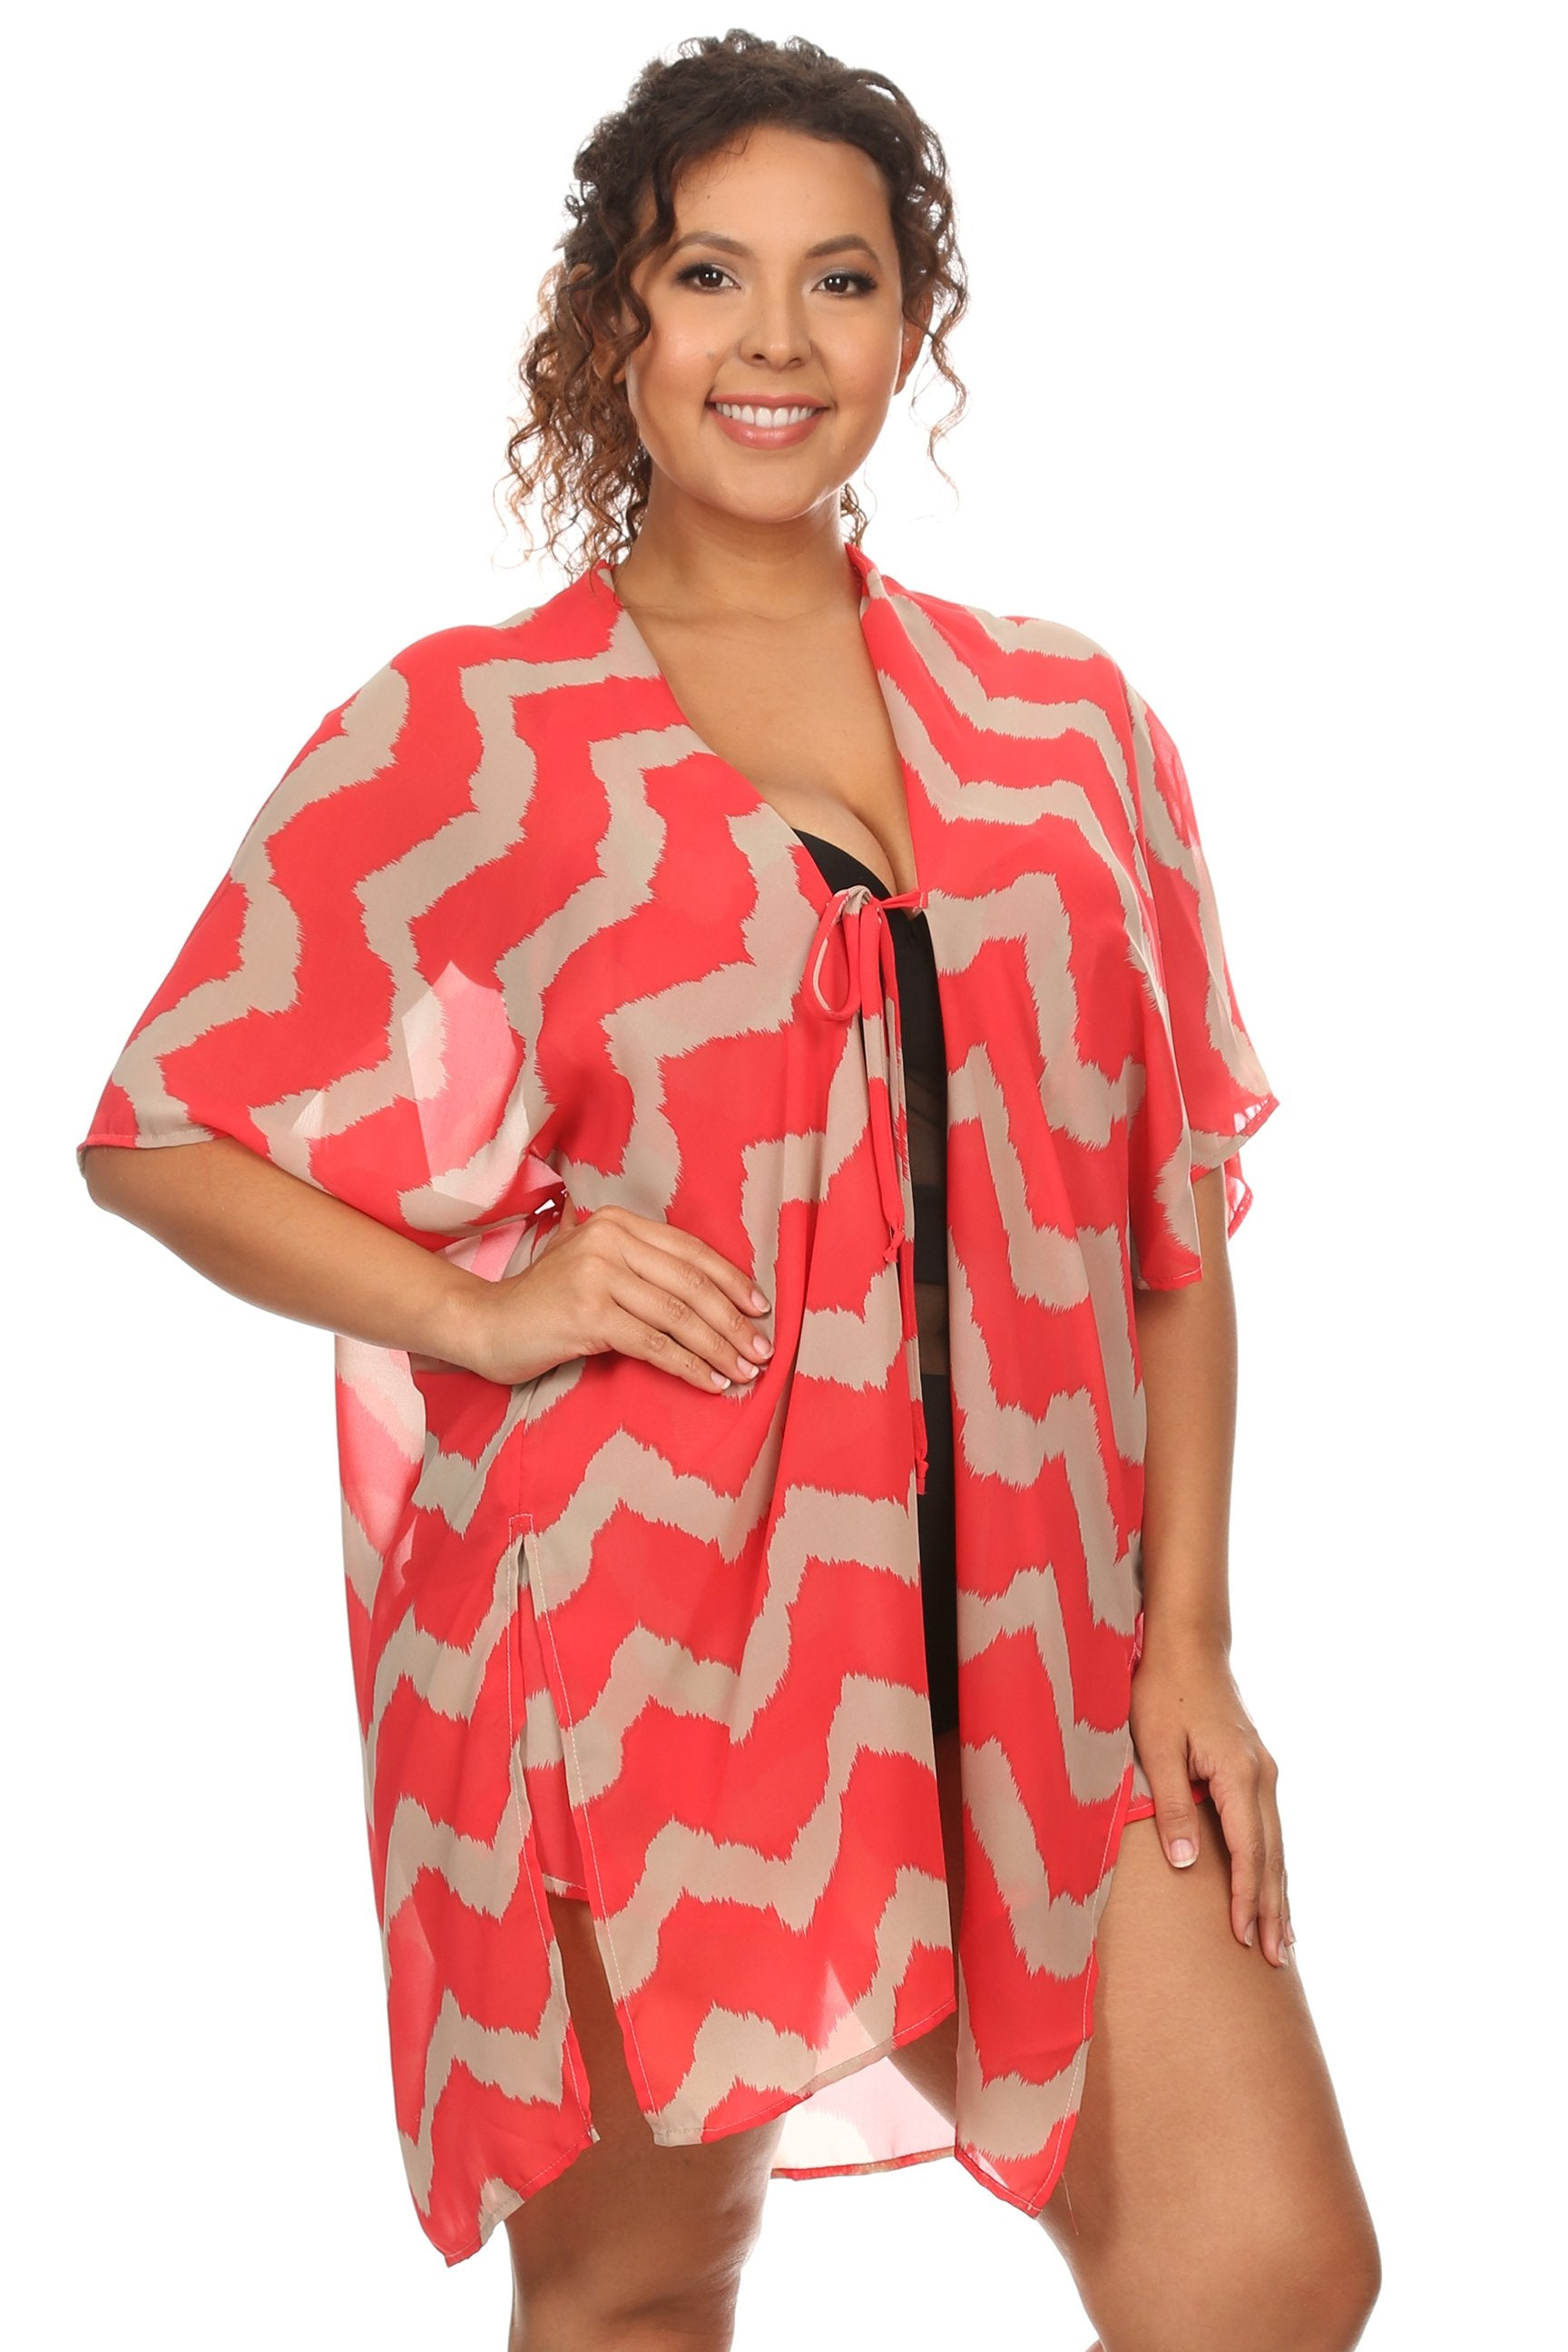 Plus Size Women's Front Tie Beach Dress Cover Up Swimwear,  Made in USA